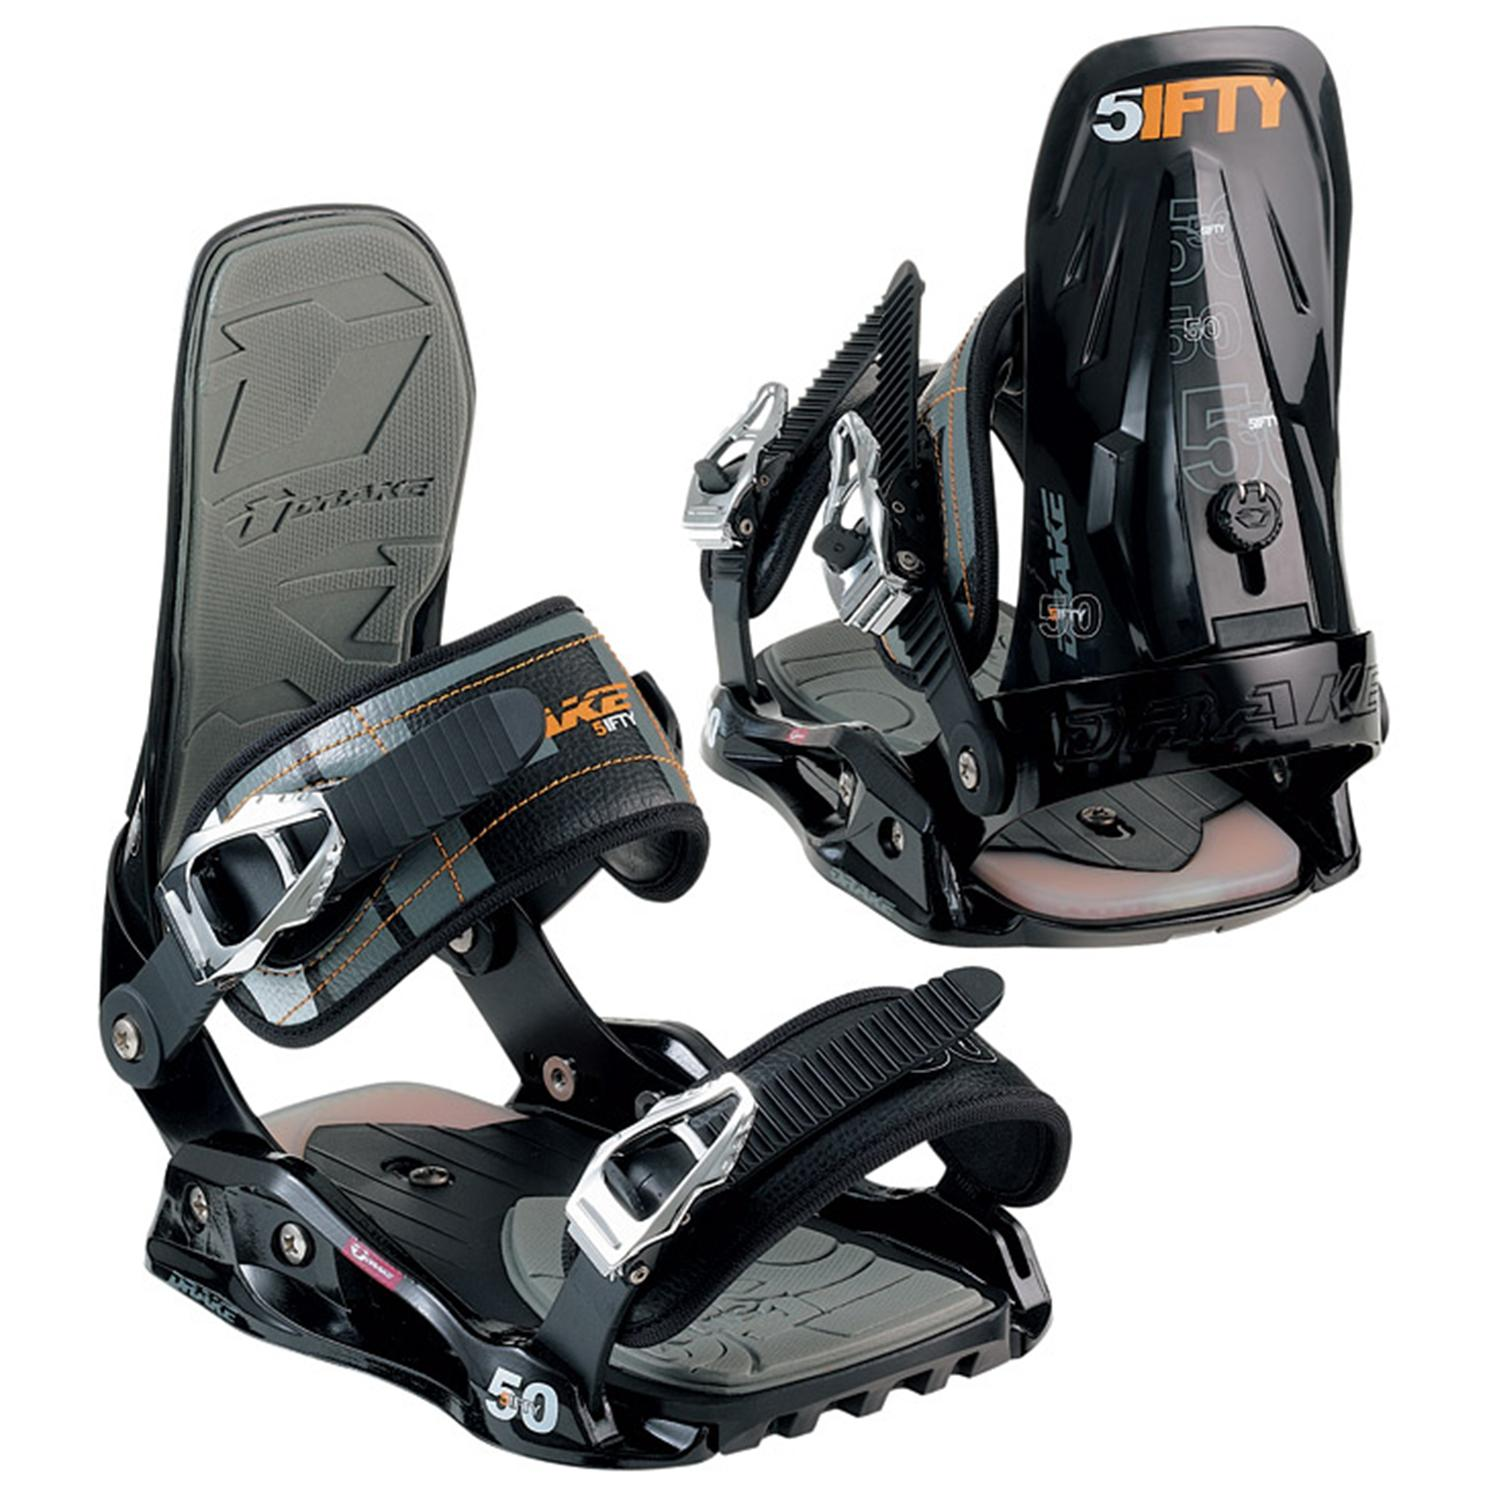 Drake Czar Snowboard Bindings 2006: Drake Fifty Snowboard Bindings 2006